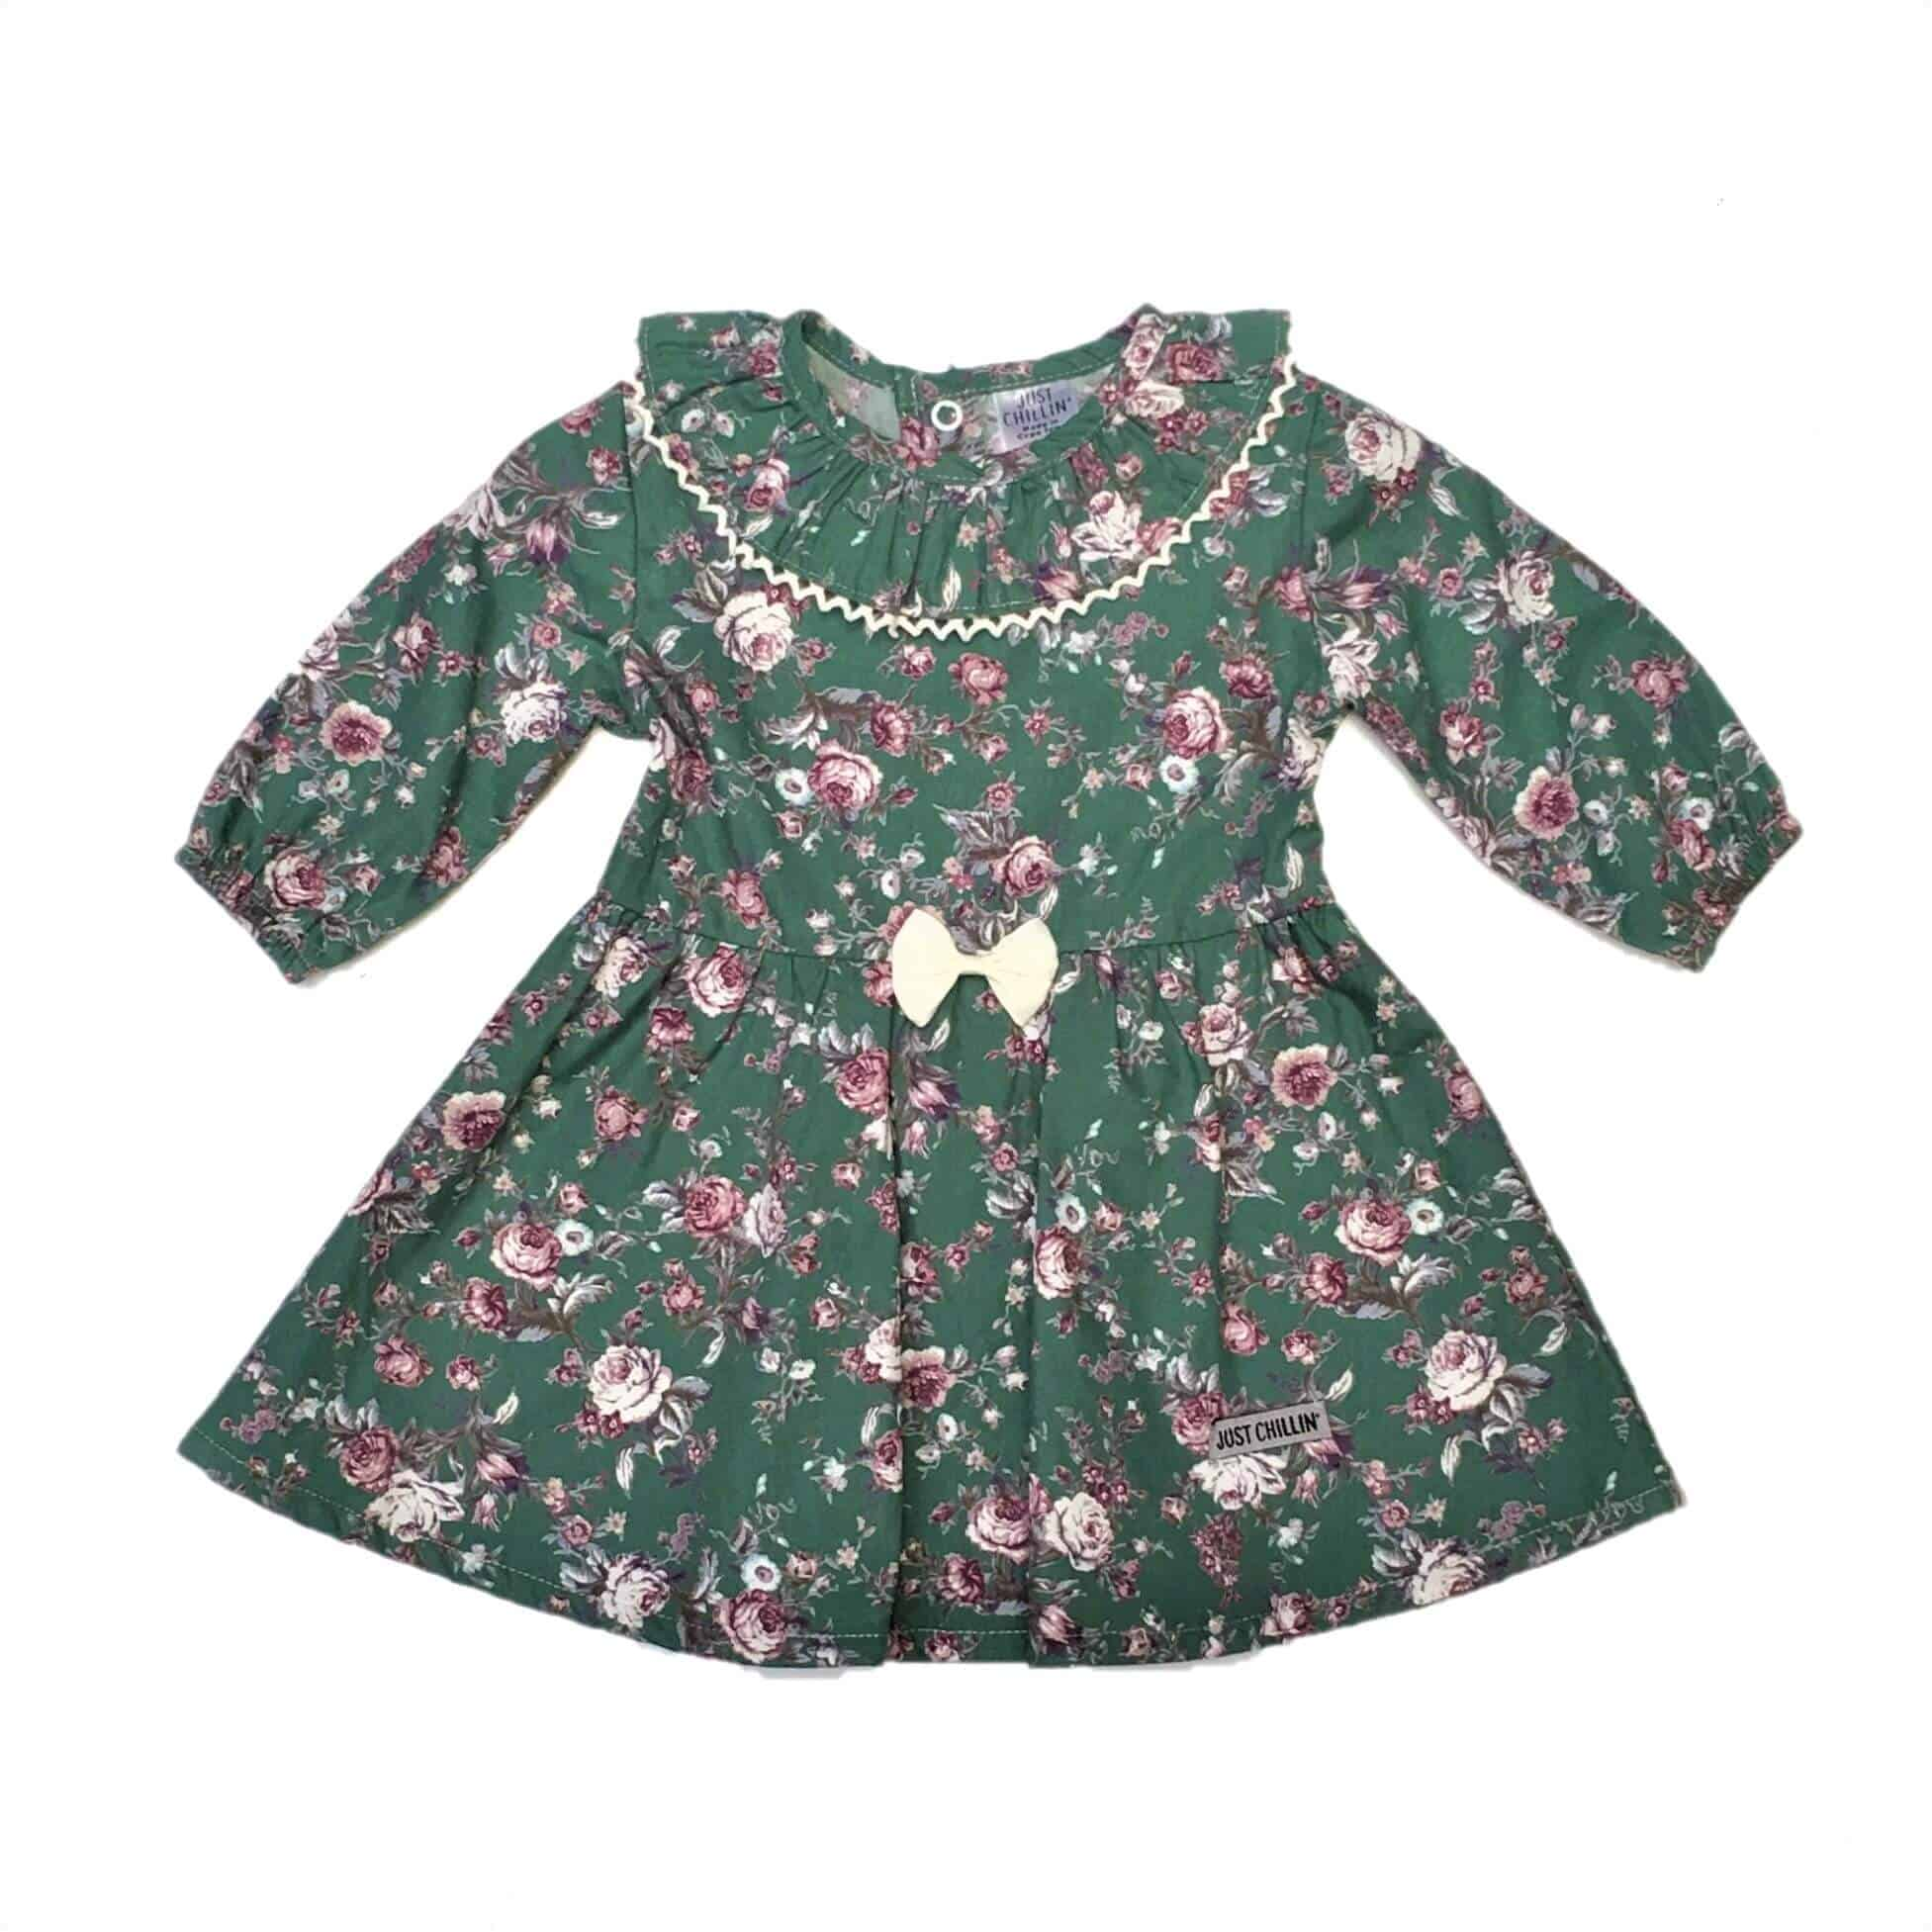 5f08230cce6c4 Baby Girls Dress - Green Floral